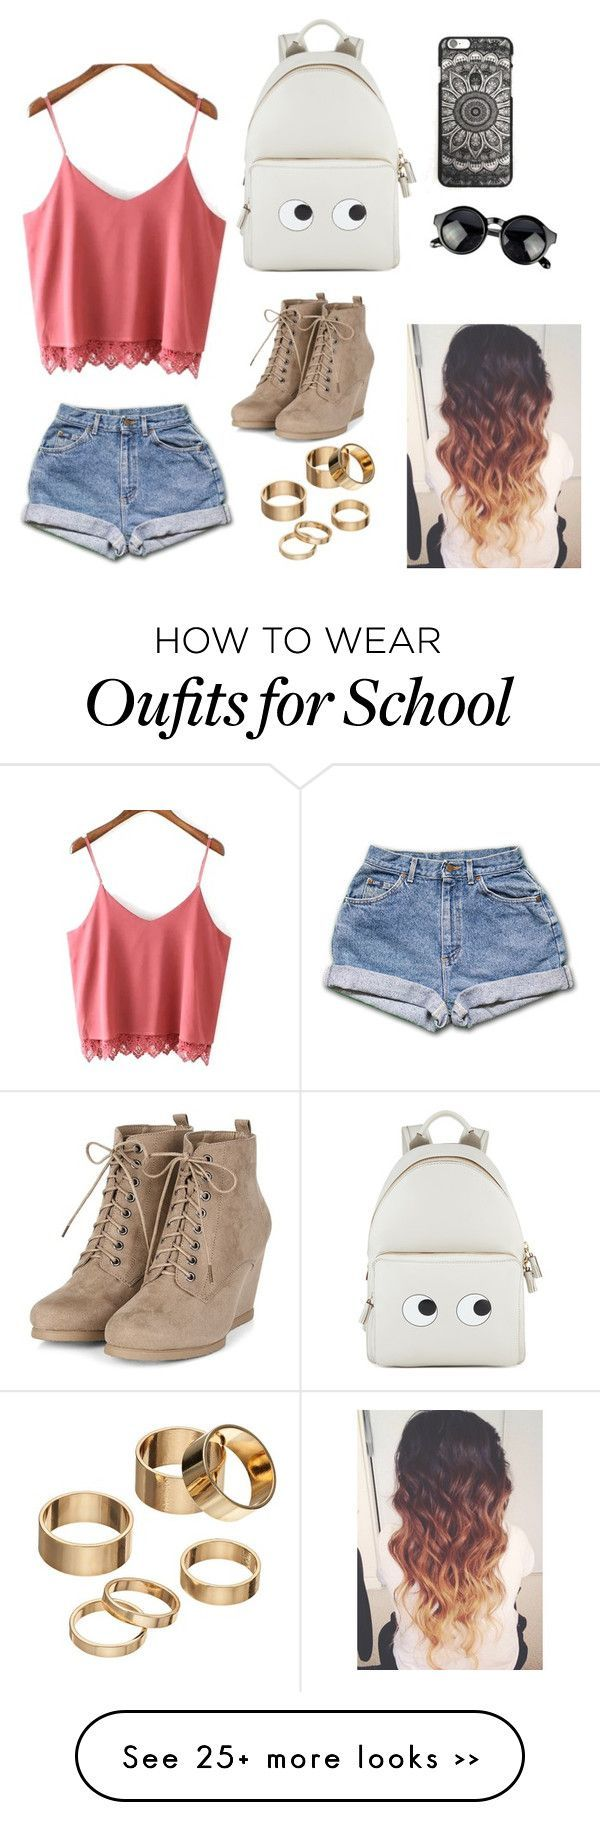 Back to school by fashionistahawaii on Polyvore featuring Anya Hindmarch and Apt. 9 Clothing, Shoes & Jewelry - Women - nike women's shoes - http://amzn.to/2kkN5IR